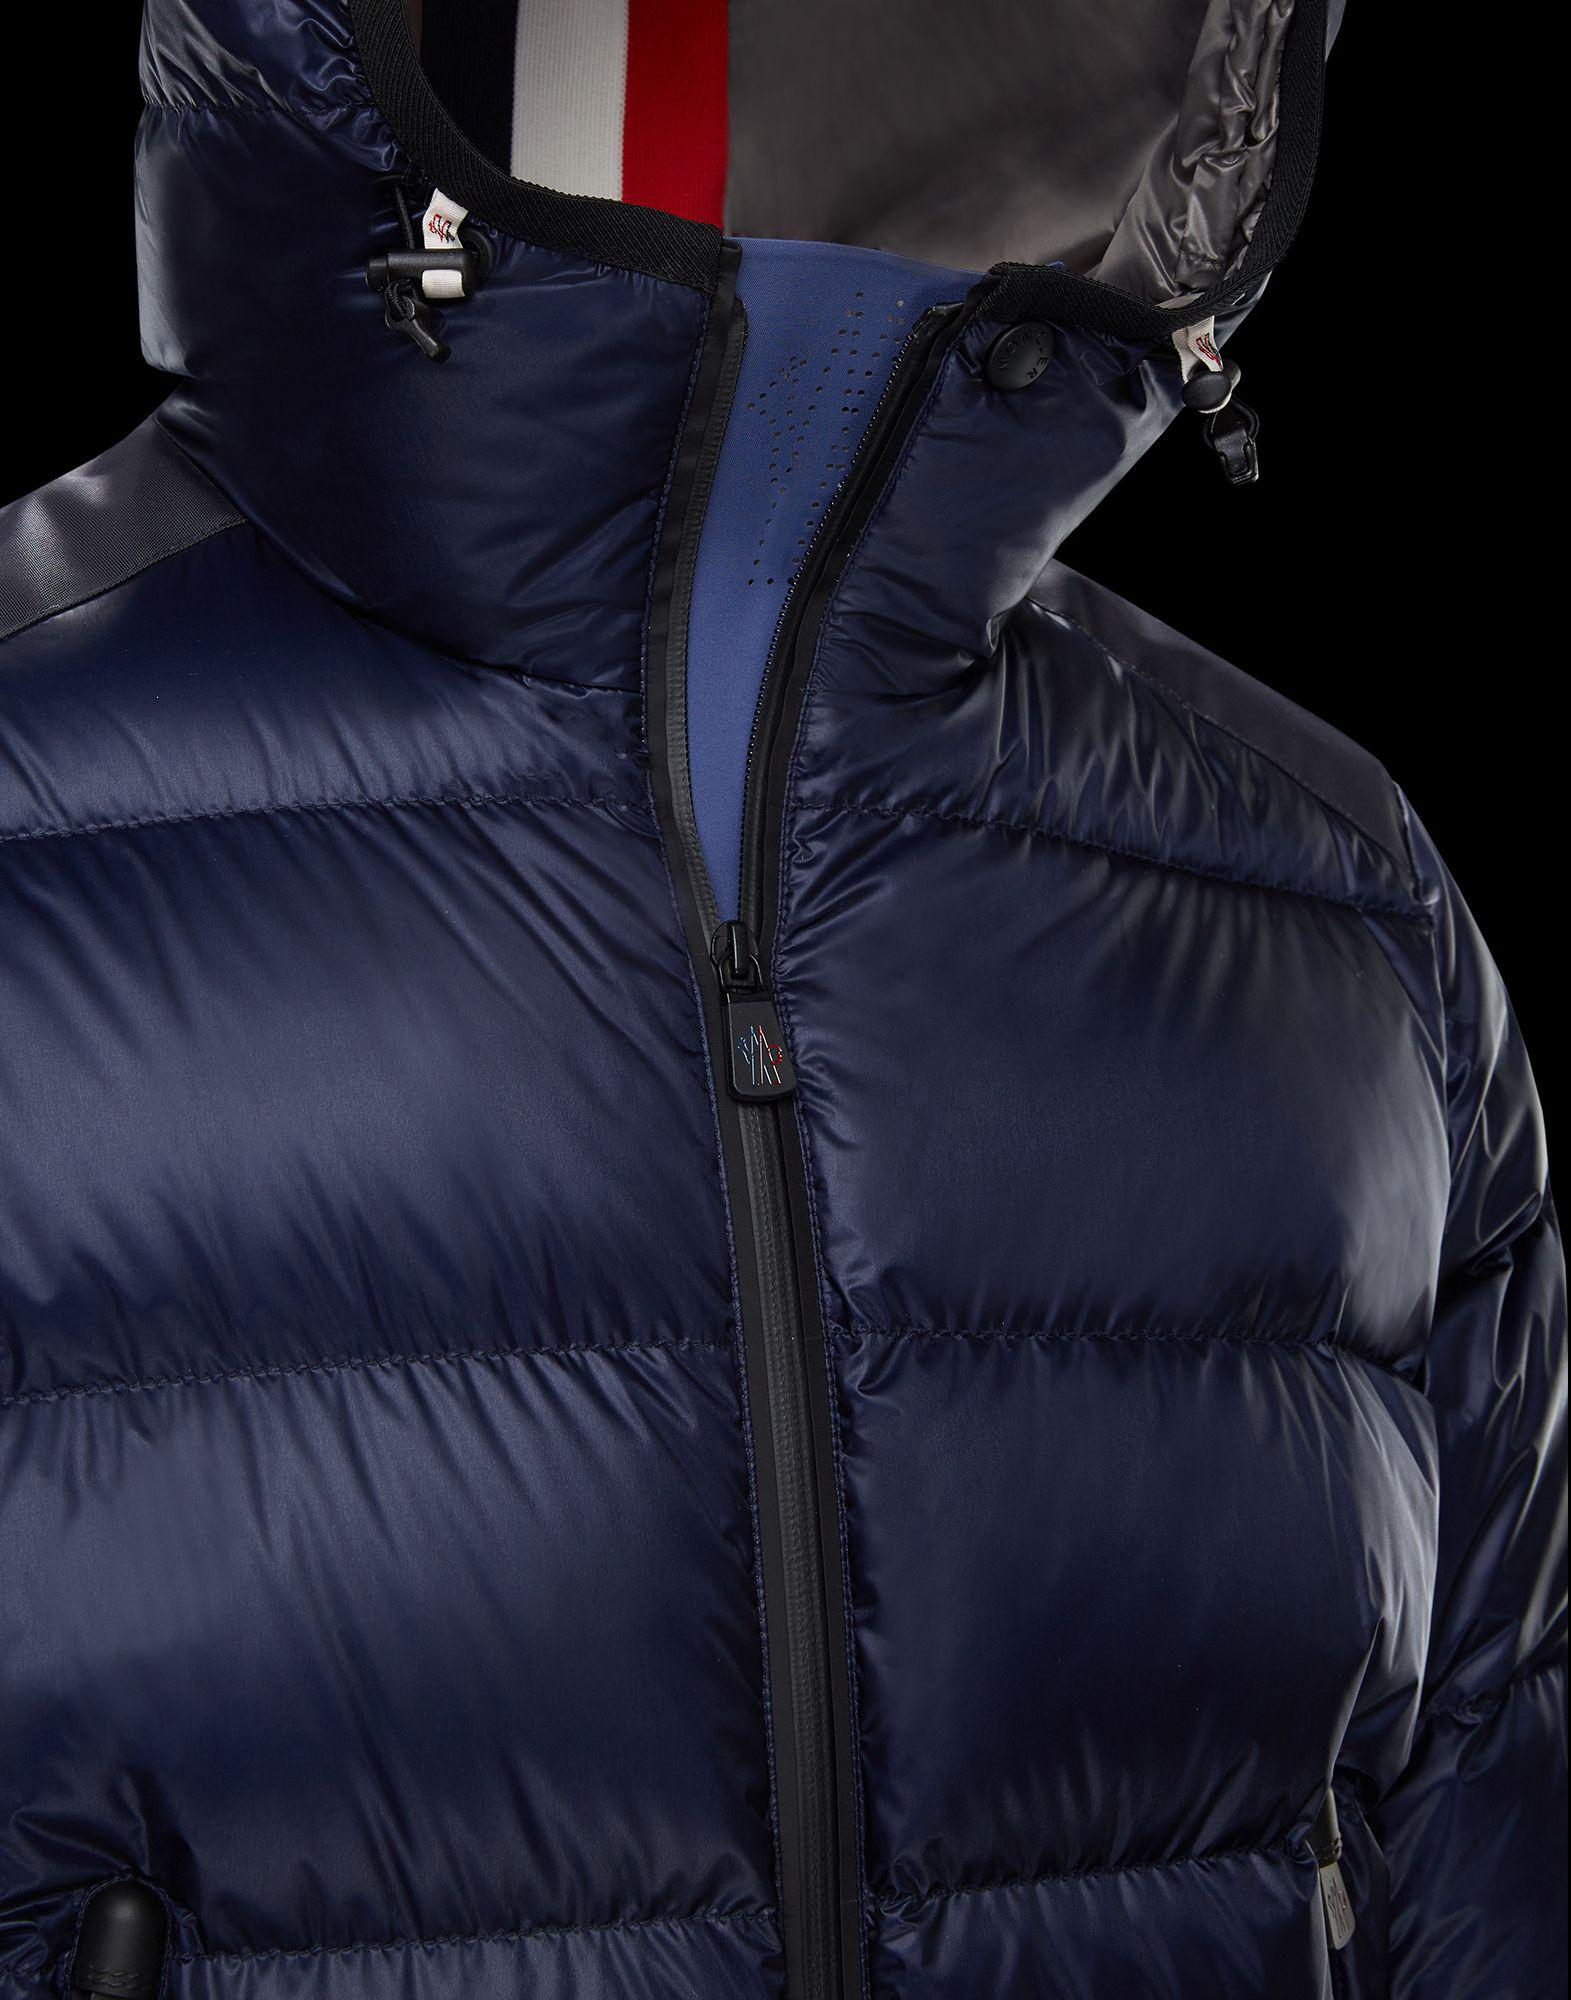 b3dc805cc Lyst - Moncler Grenoble Hintertux in Blue for Men